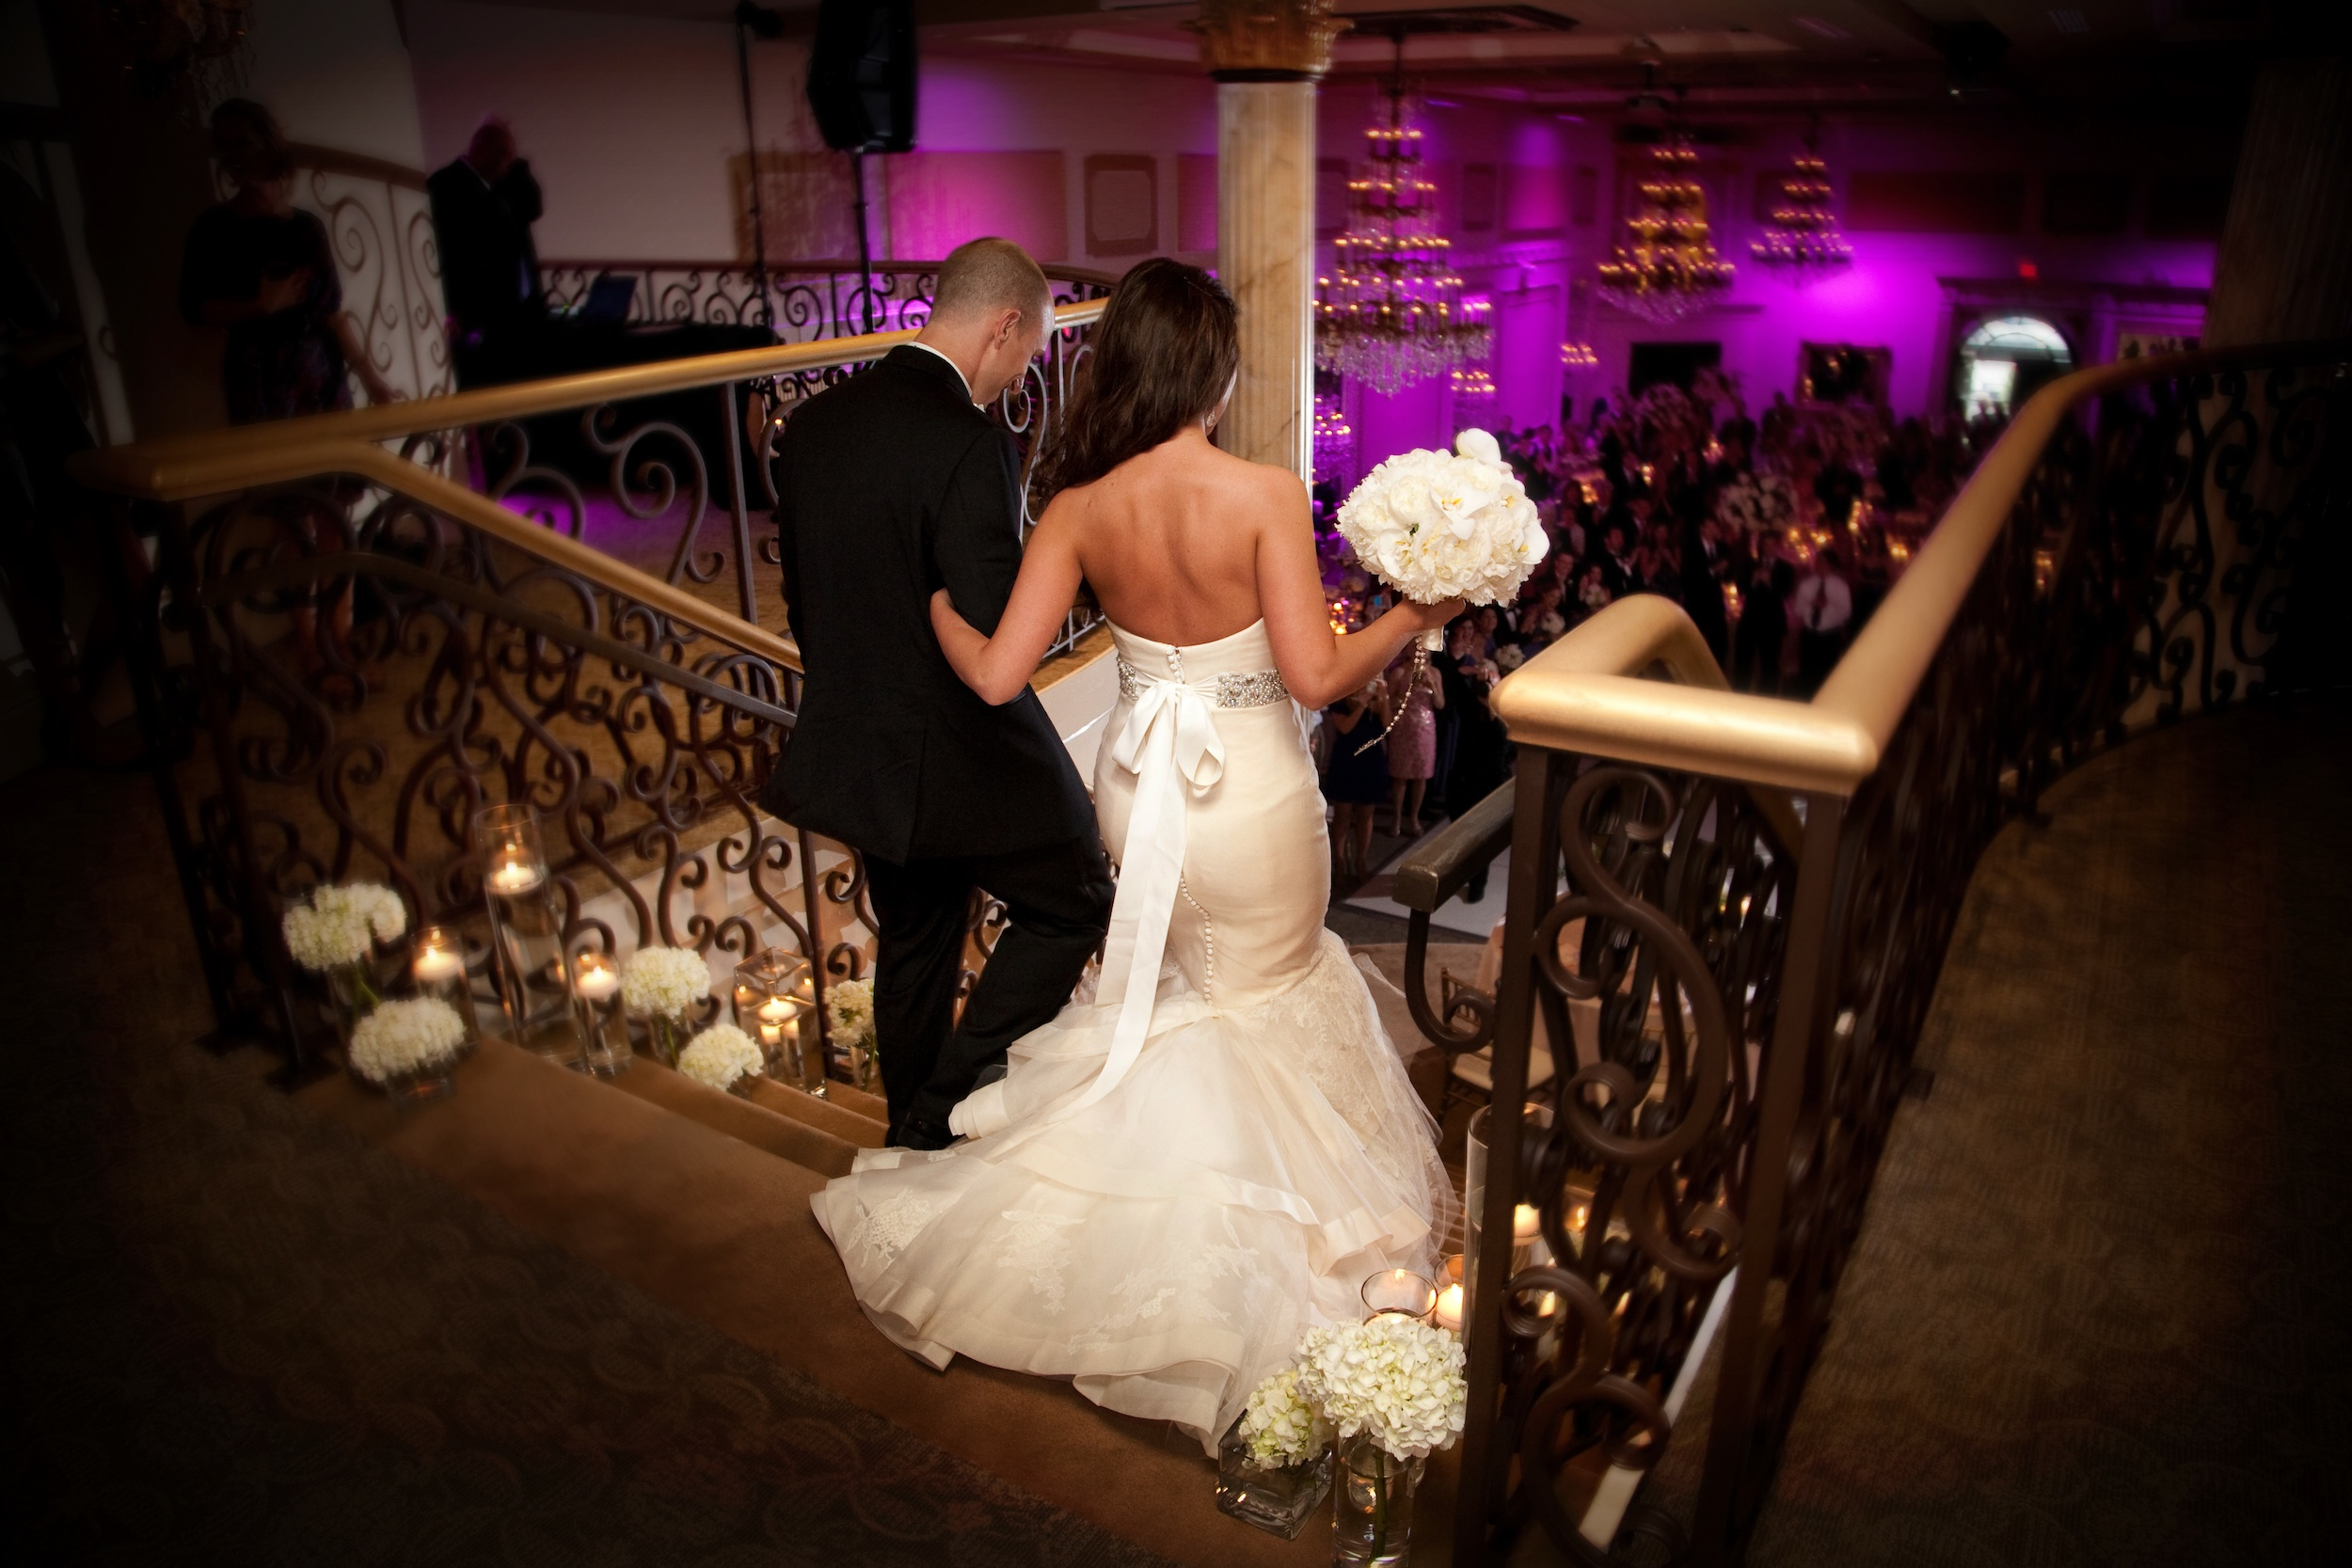 hiring a photographer wedding photography robert evans the art of choosing this important wedding professional